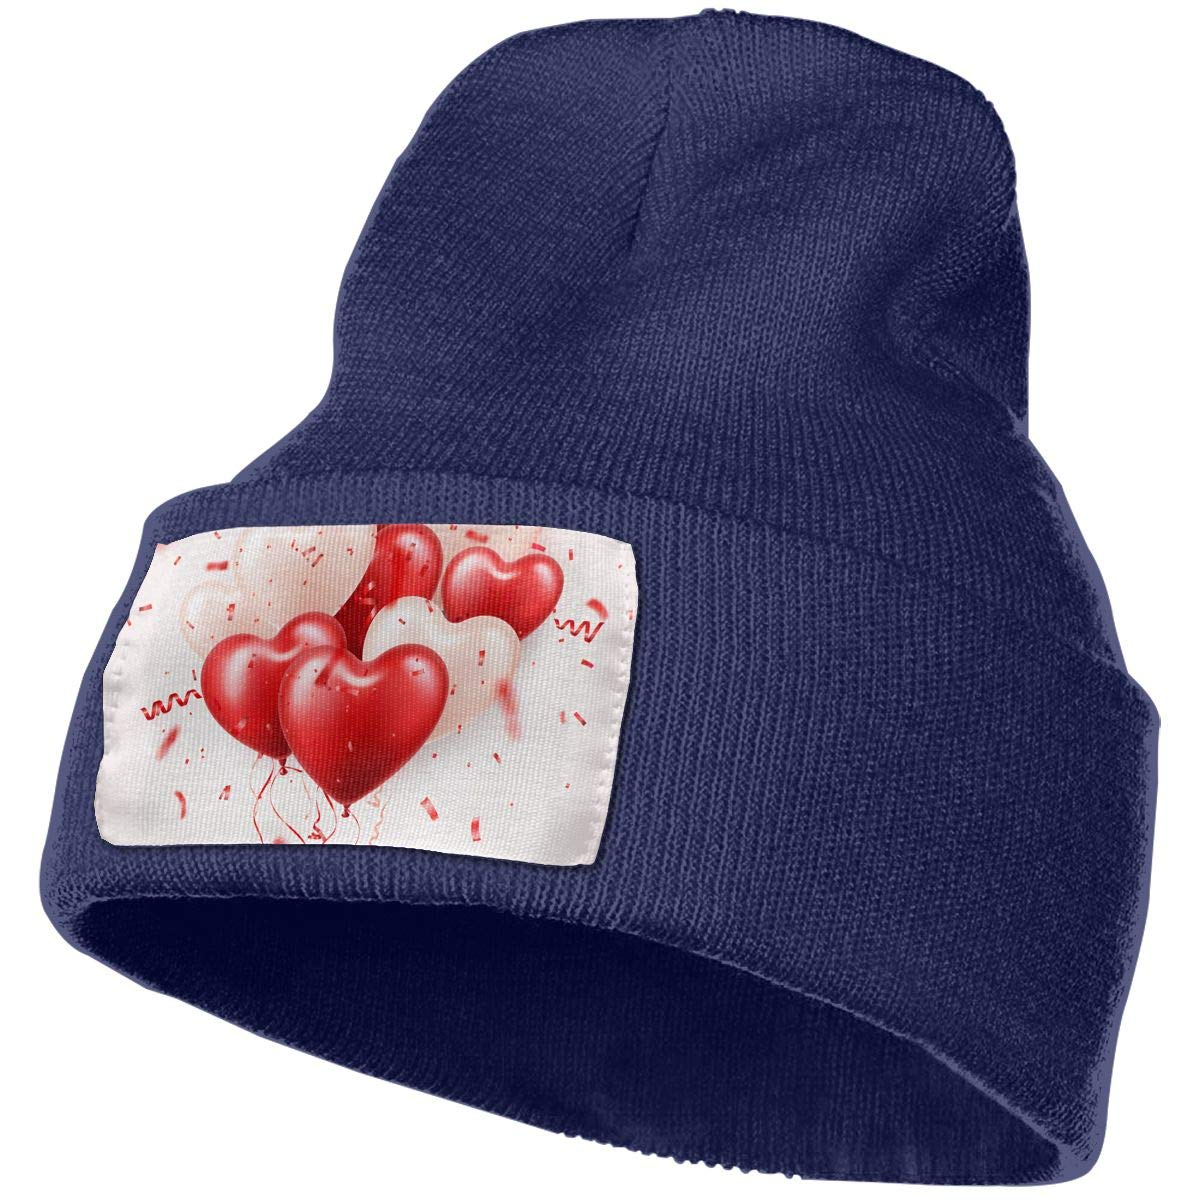 Red 3D Balloons and Confetti Unisex Fashion Knitted Hat Luxury Hip-Hop Cap